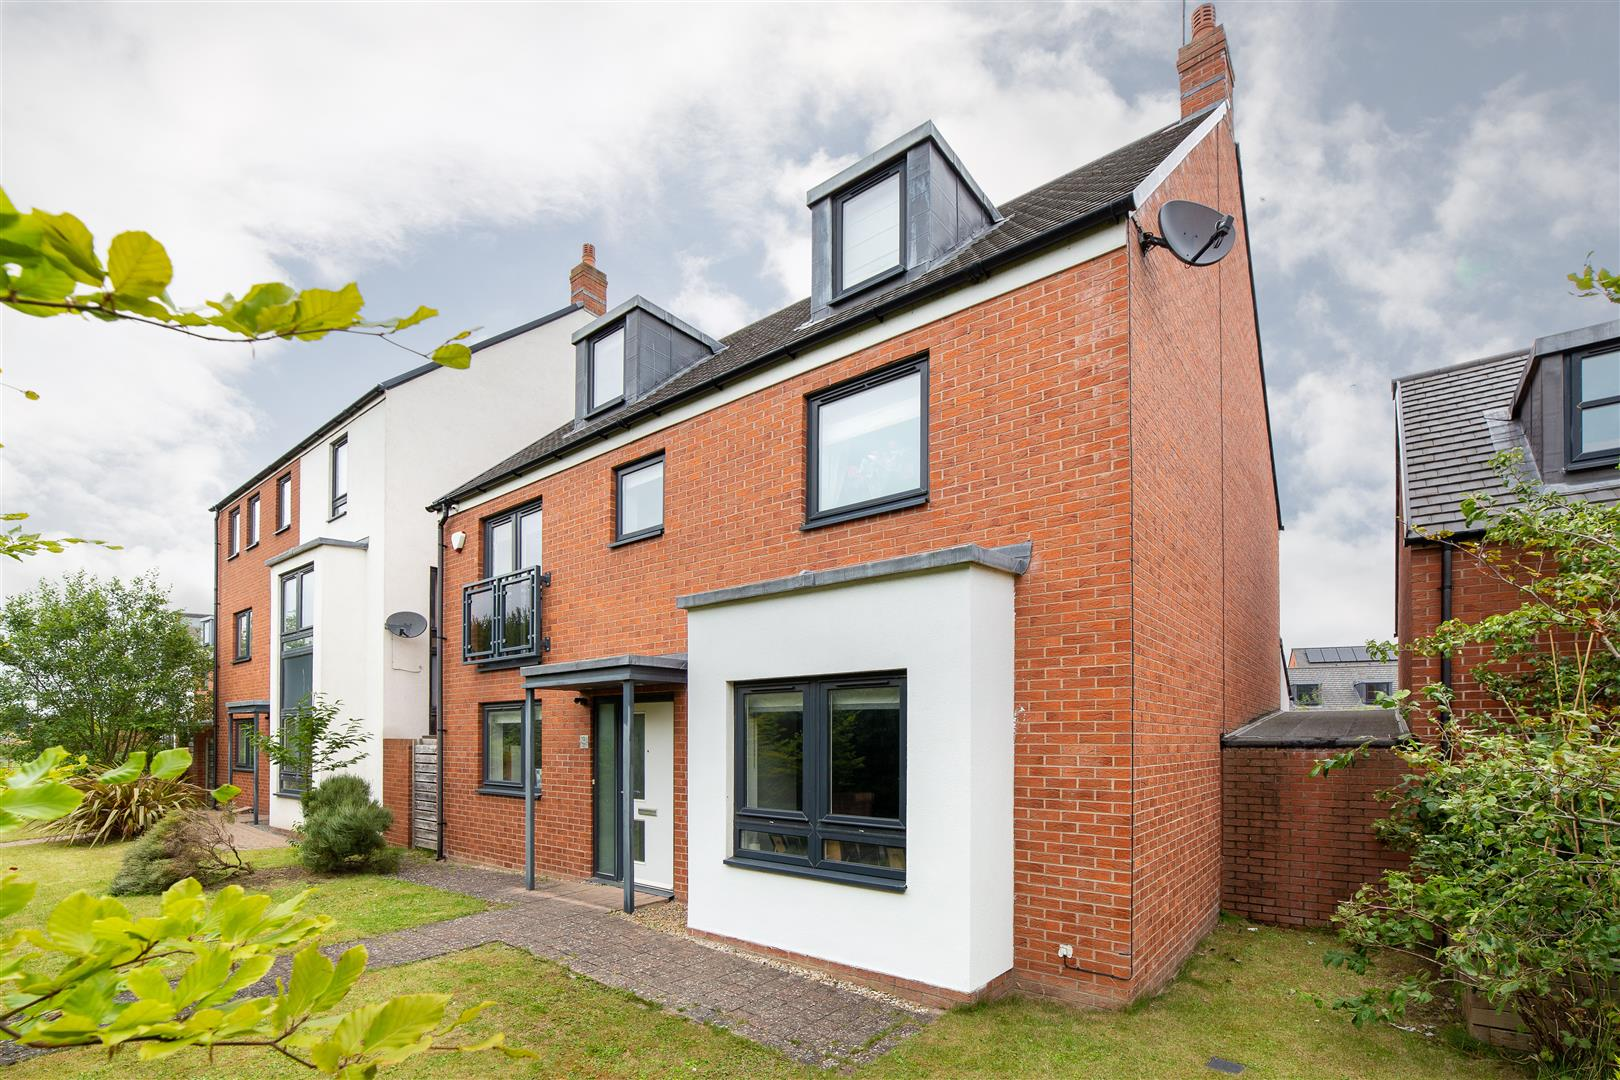 5 bed detached house for sale in Carlington Walk, Great Park - Property Image 1